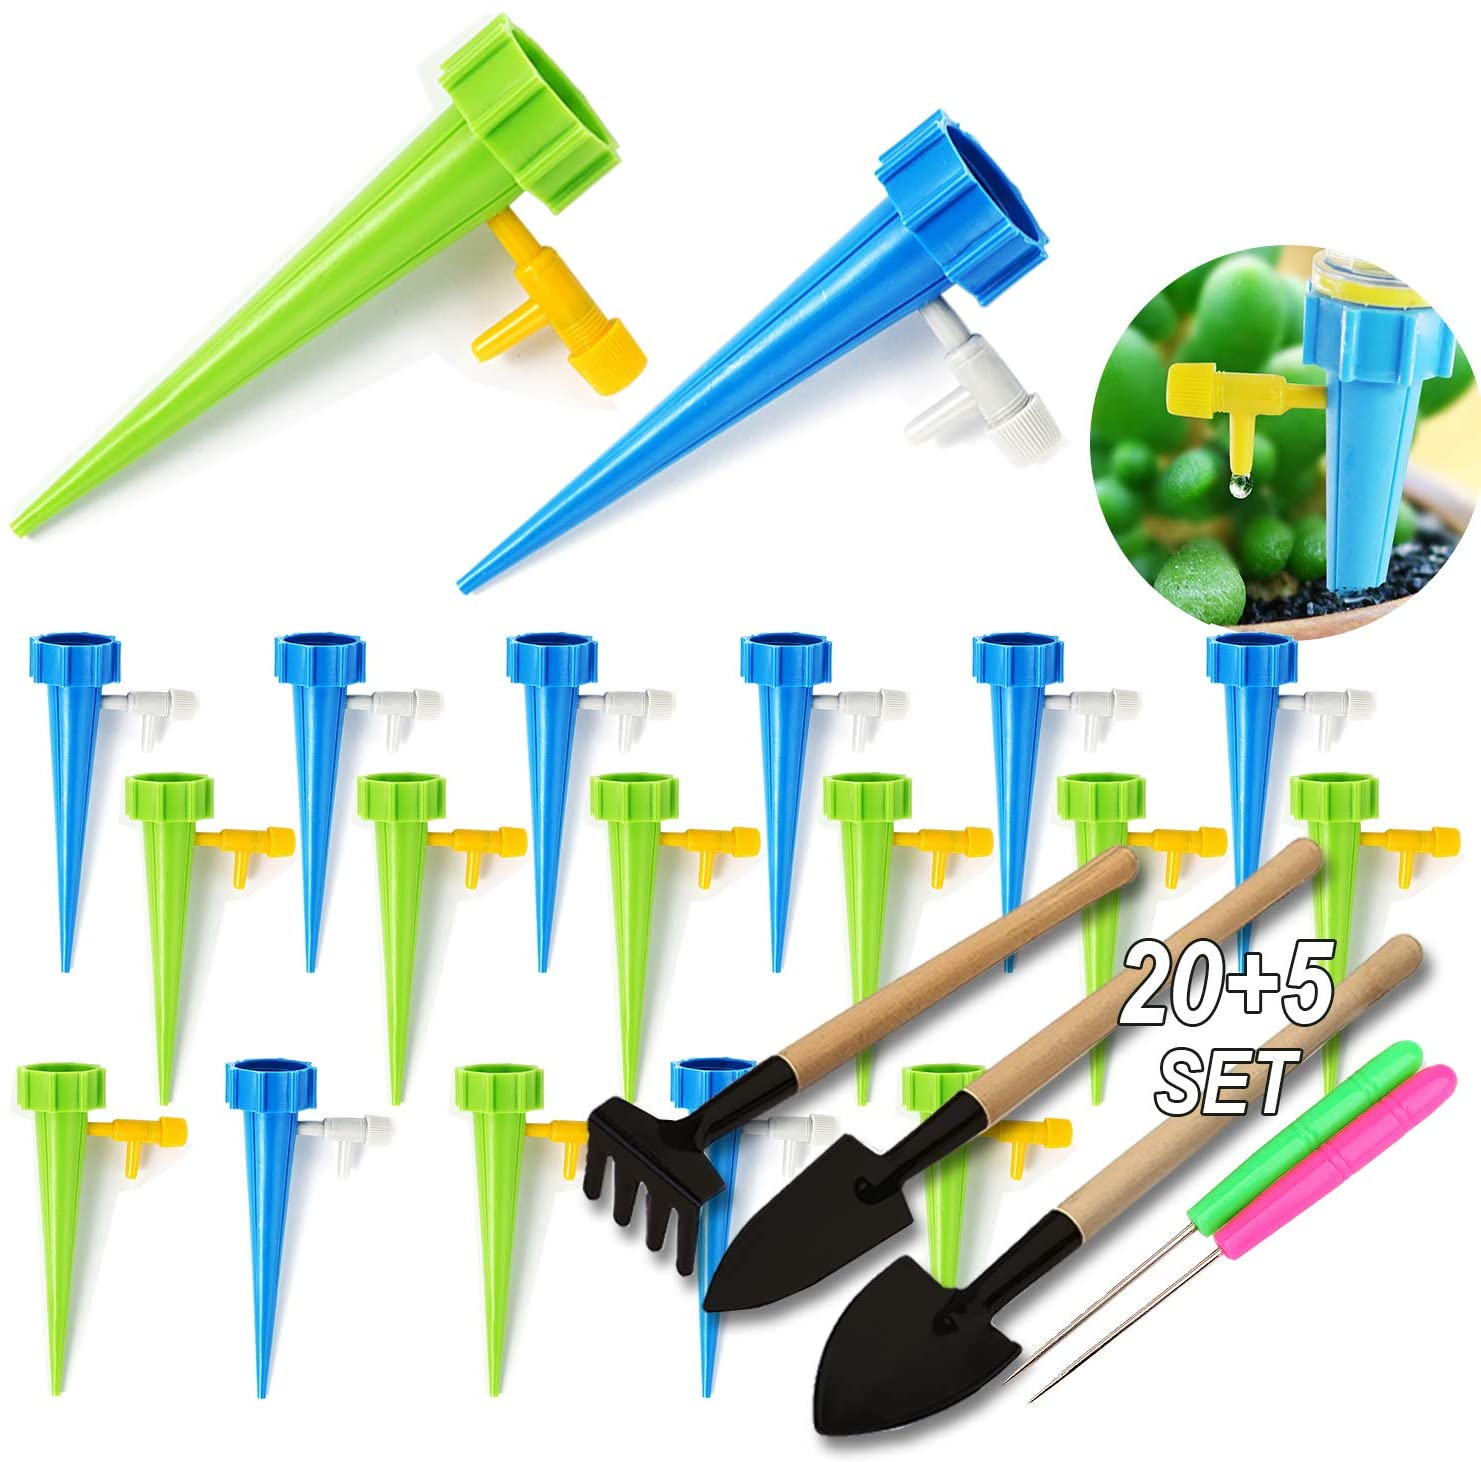 SPROUTER 20 Self Watering Spikes Set, Vacation Self Watering Device with Adjustable Control Valve Switch, Auto Drippers Irrigation Devices for Houseplant Indoor Plant, Officeplant,3 Garden Tools